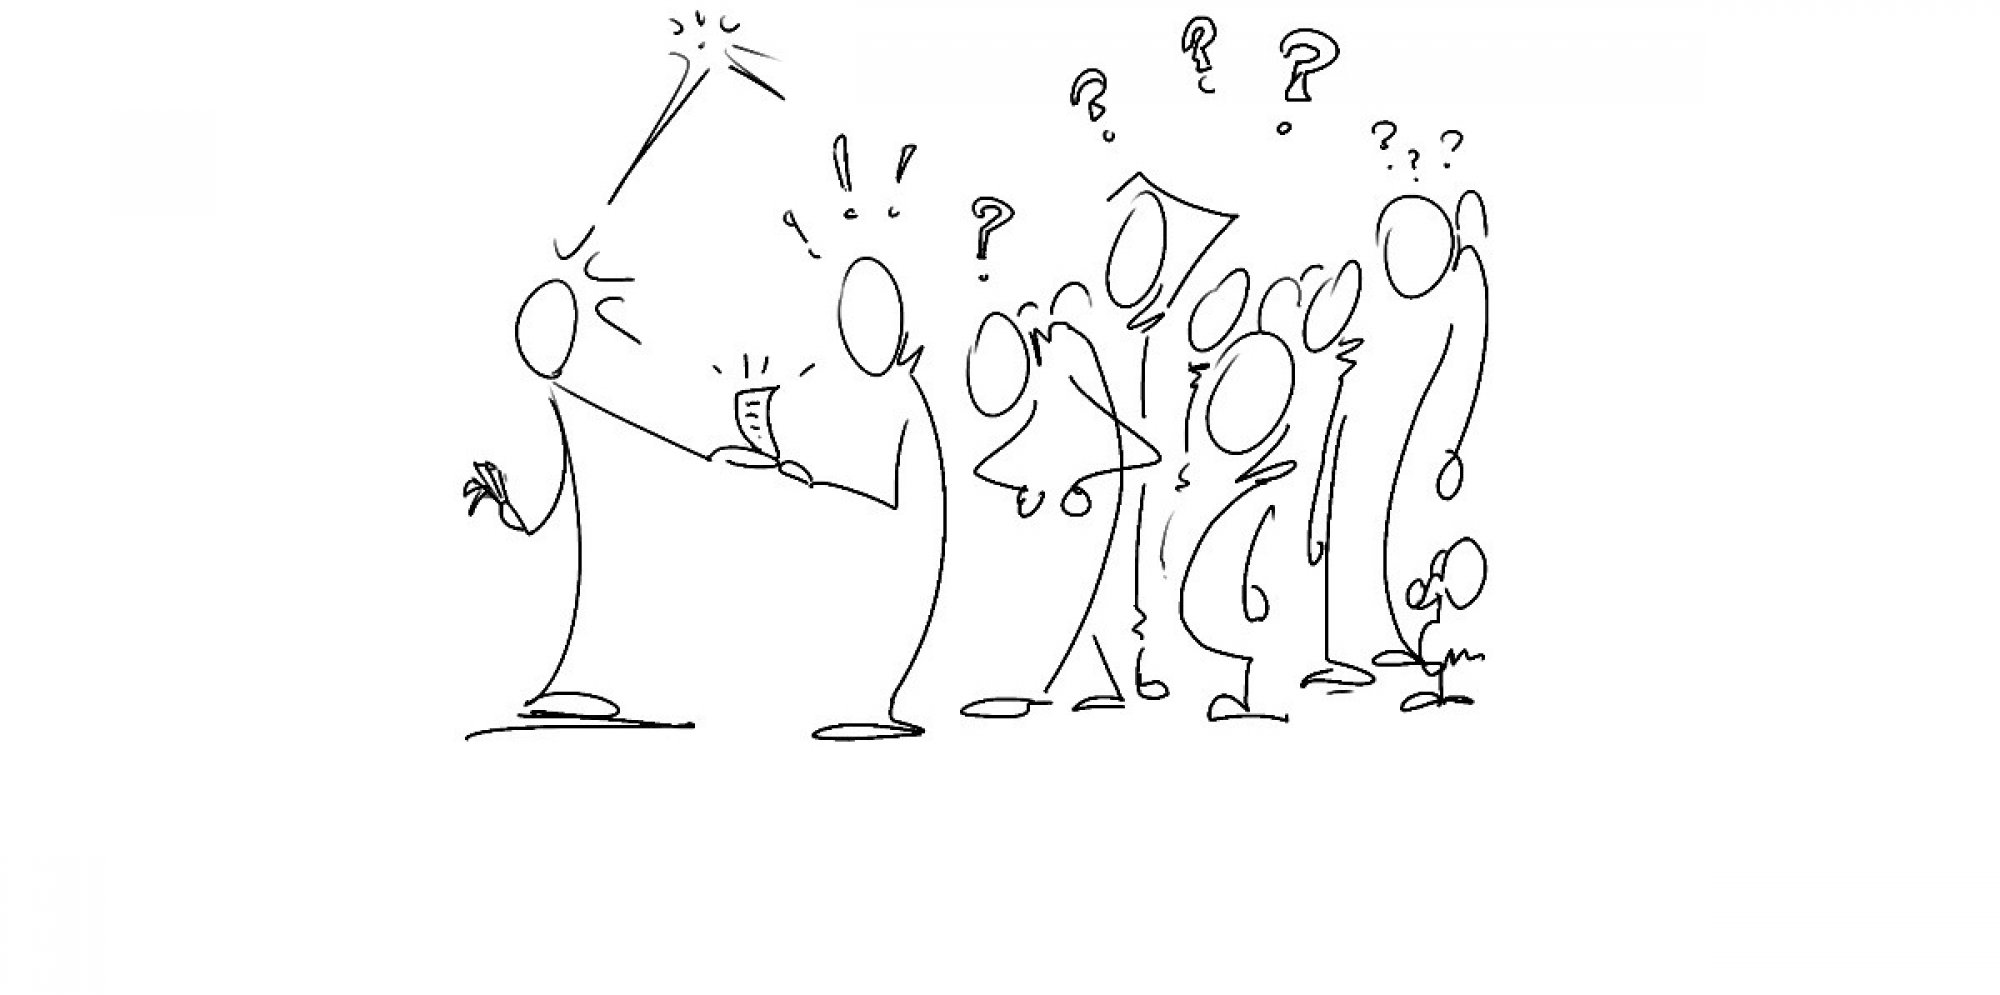 black stick figures having an engaged conversation with exclamation marks appearing over their heads